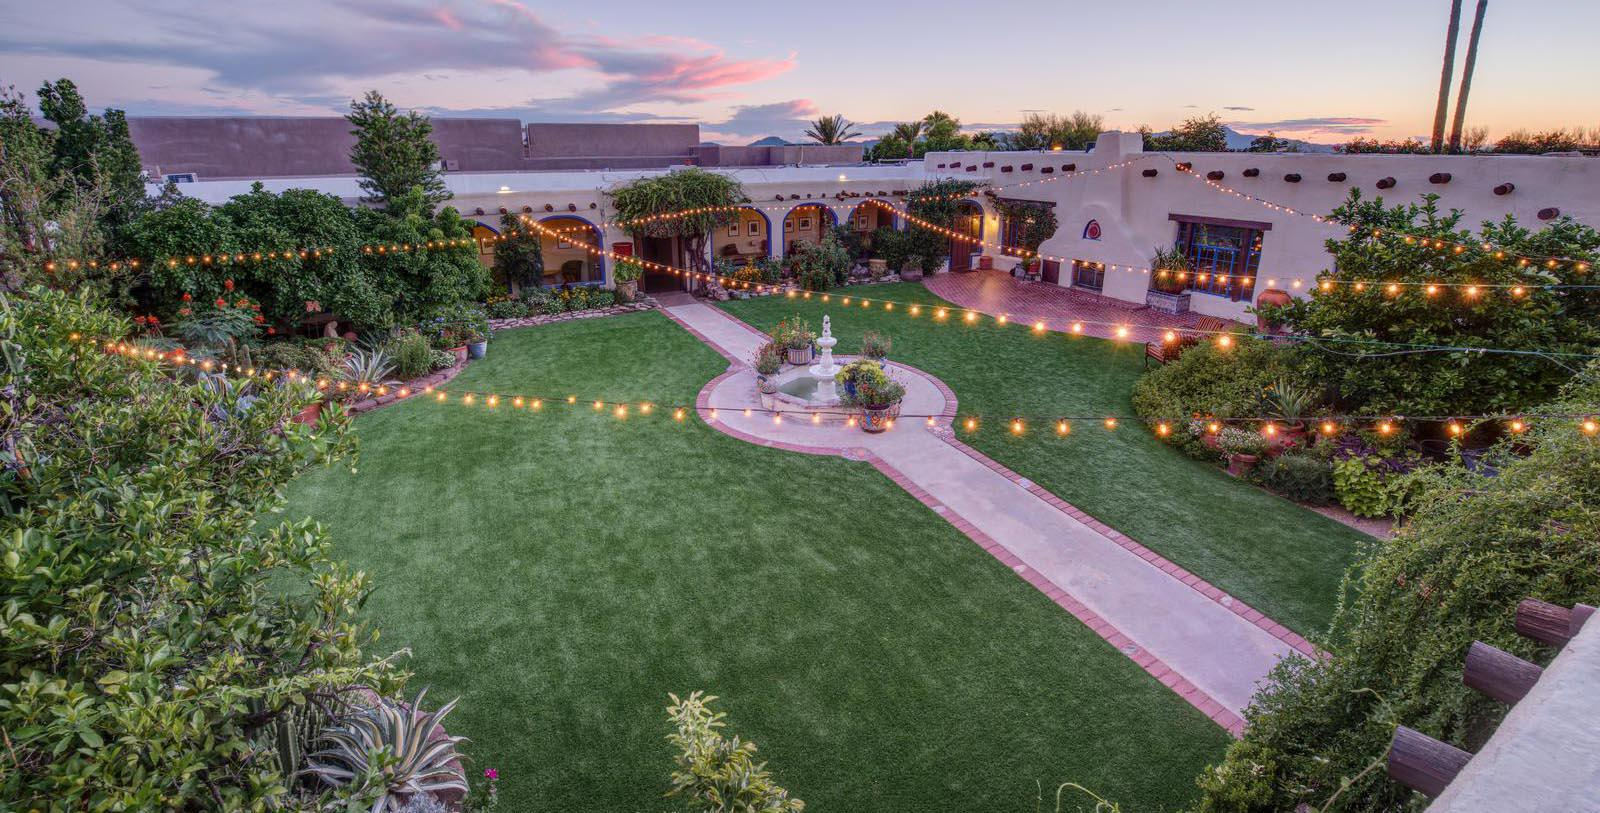 Image of exterior courtyard at night Hacienda Del Sol Guest Ranch Resort, 1929, Member of Historic Hotels of America, in Tuscan, Arizona, Experience